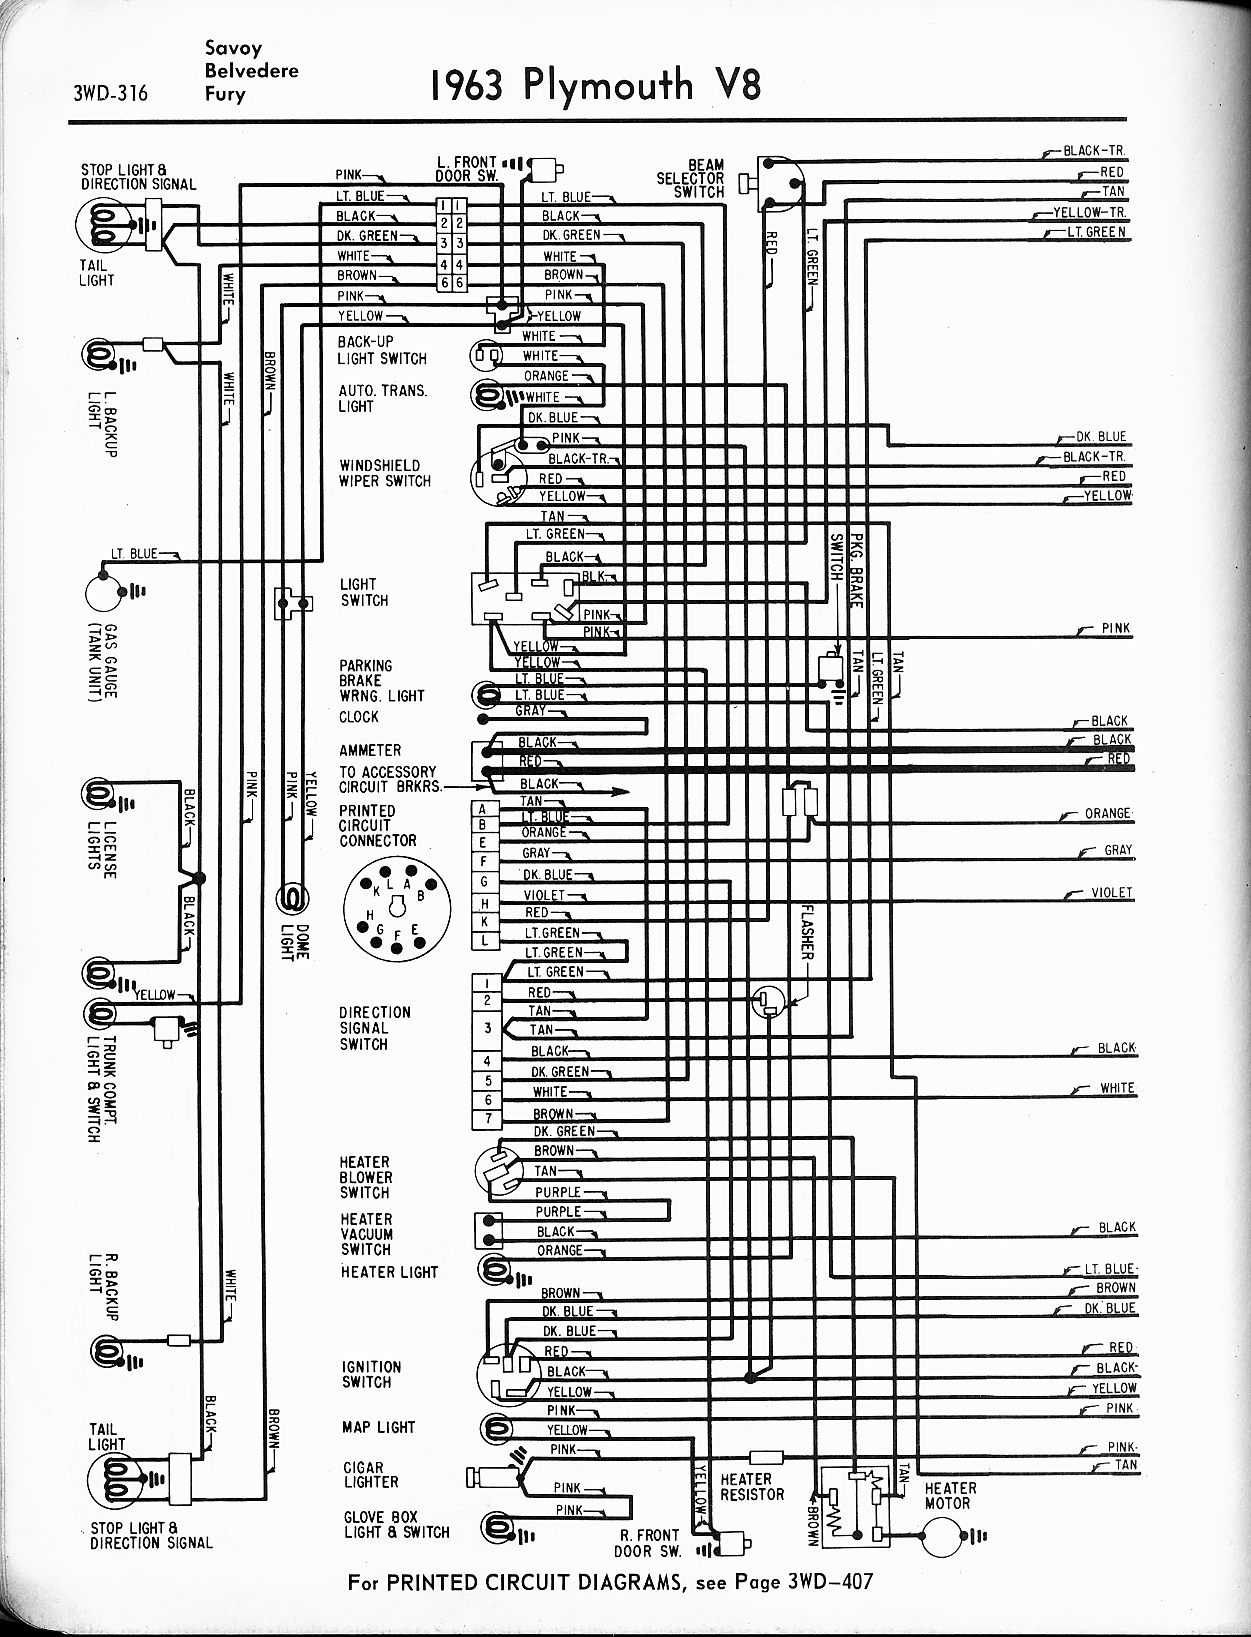 1956 1965 plymouth wiring the old car manual project 64 plymouth fury wiring diagrams